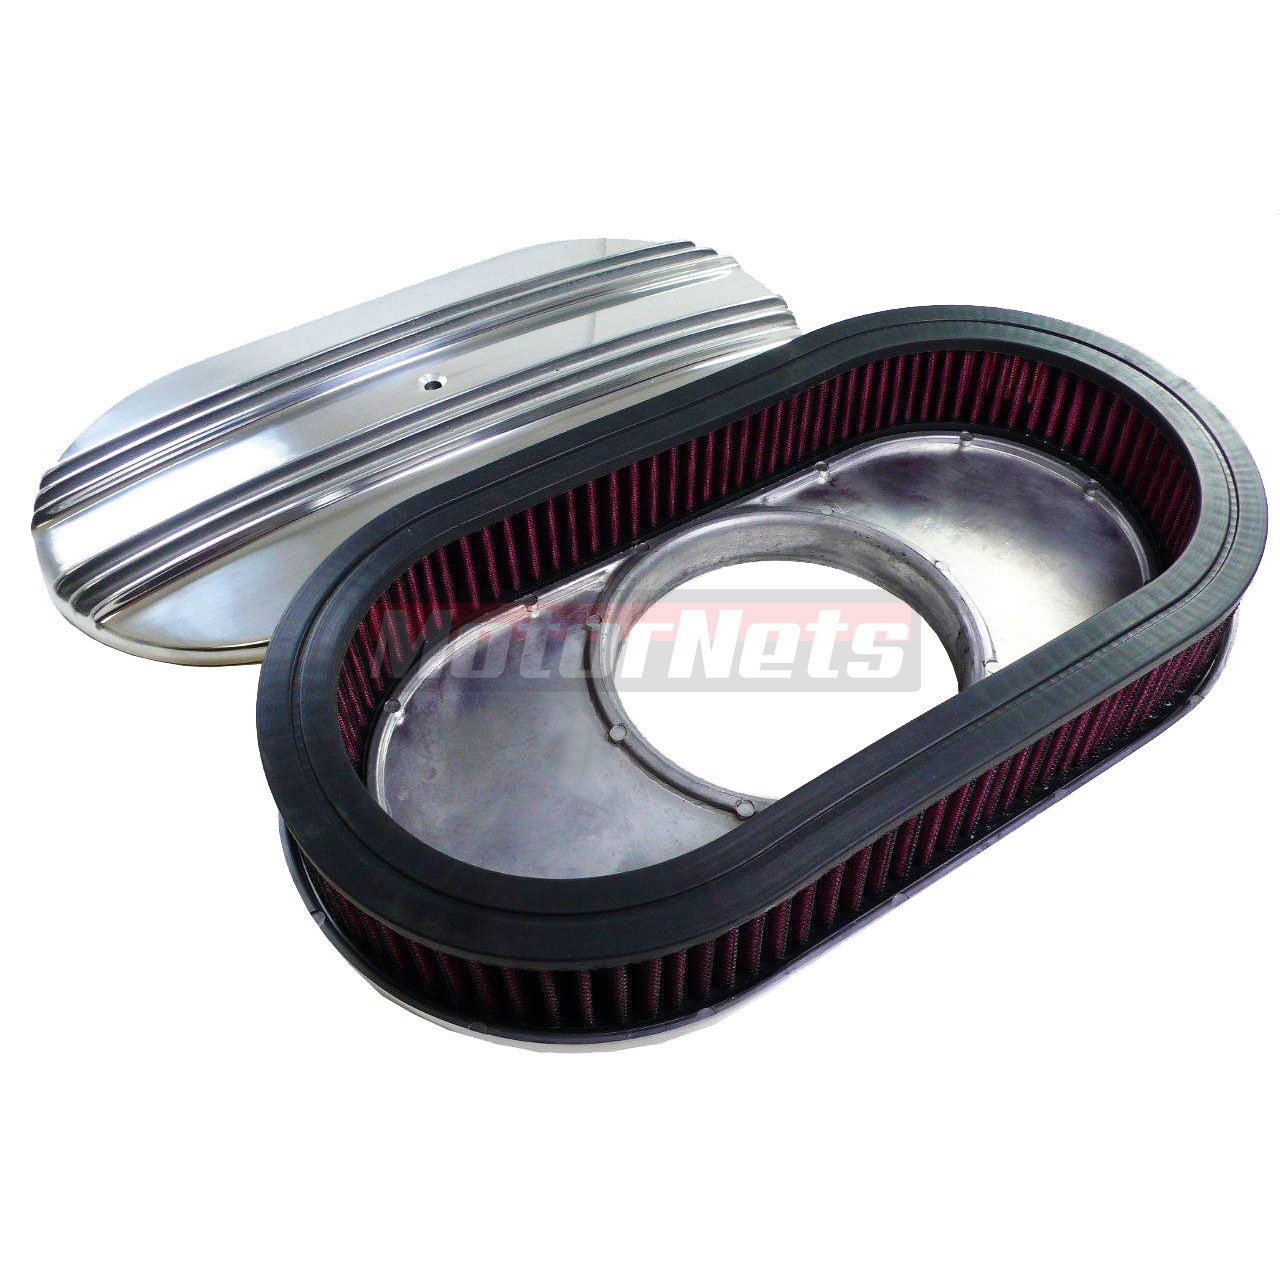 Built Rat Rod Air Cleaner : Quot polished finned aluminum air cleaner breather washable